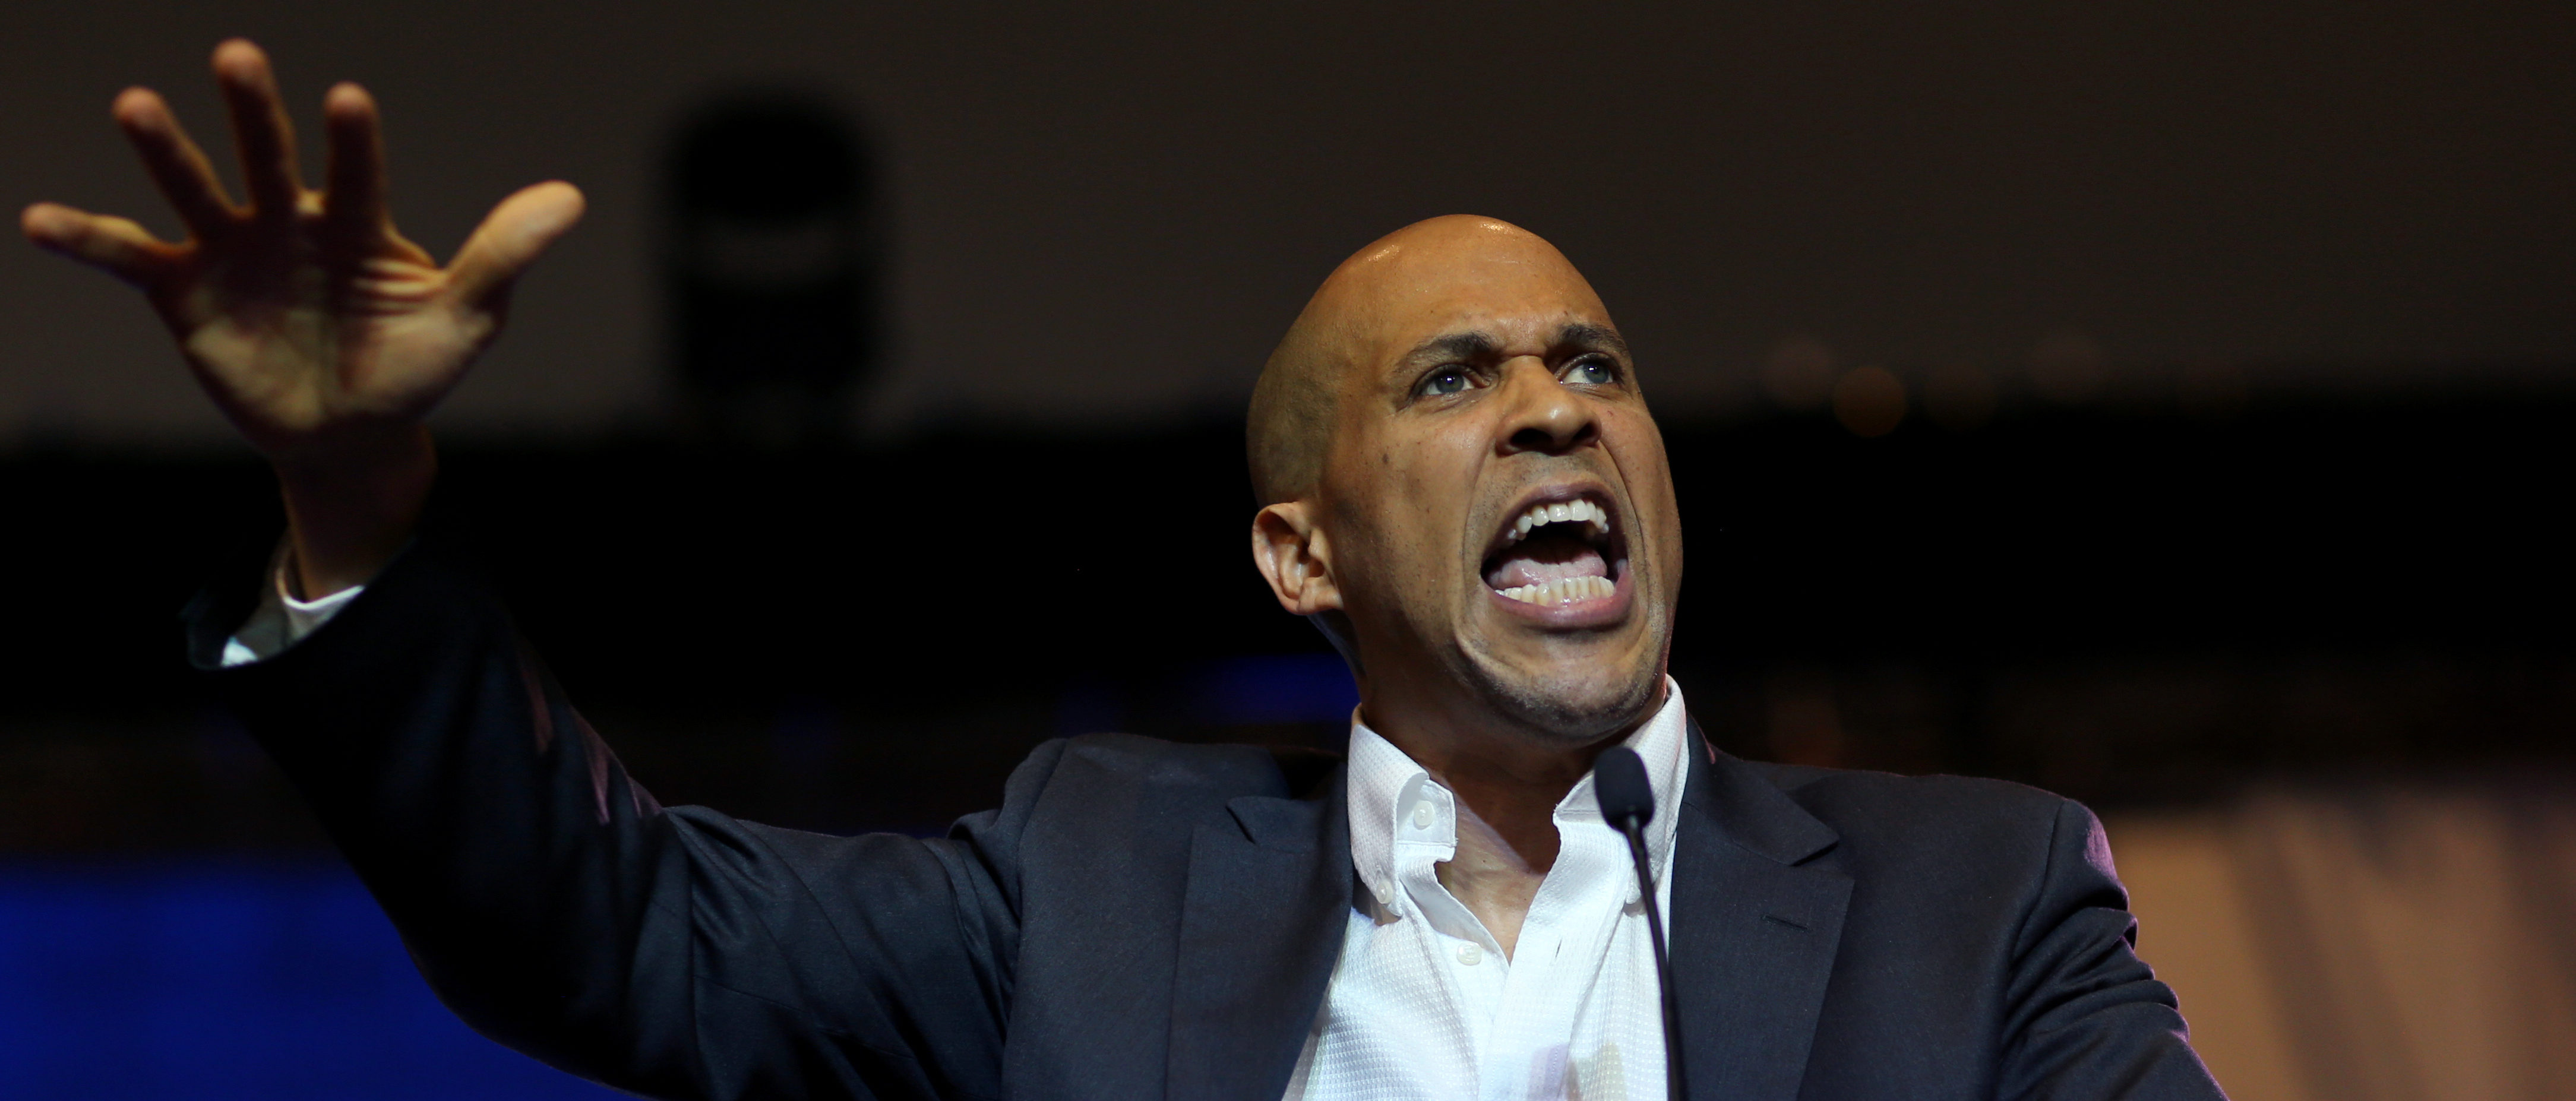 Democratic presidential candidate Senator Cory Booker delivers a speech during the SC Democratic Convention in Columbia, South Carolina, U.S., June 22, 2019. Picture taken June 22, 2019. REUTERS/Leah Millis